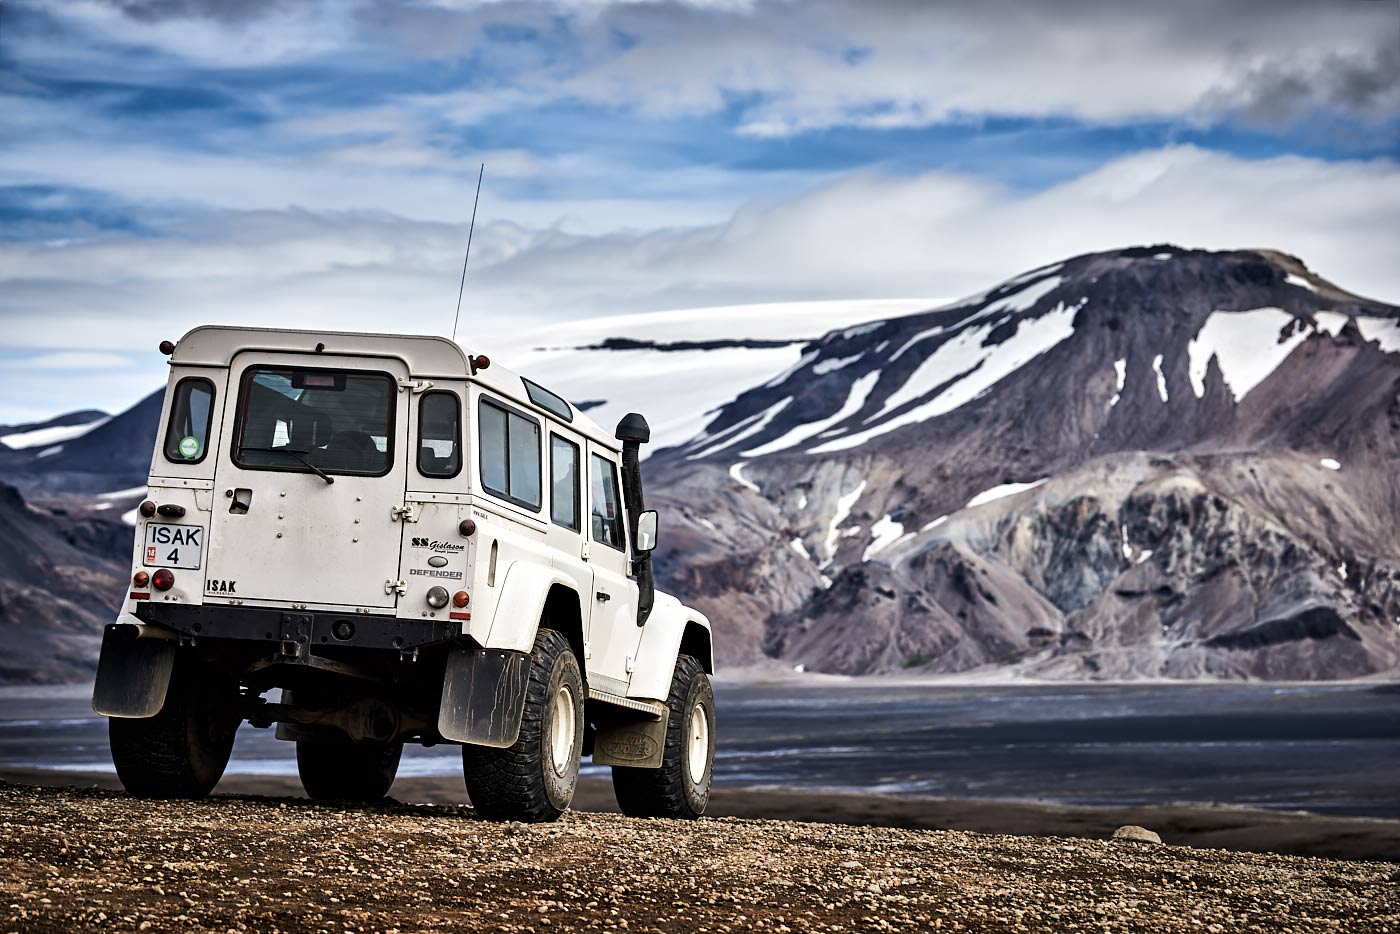 4x4 rental car, ISAK, Iceland, highlands, off-road, Iceland